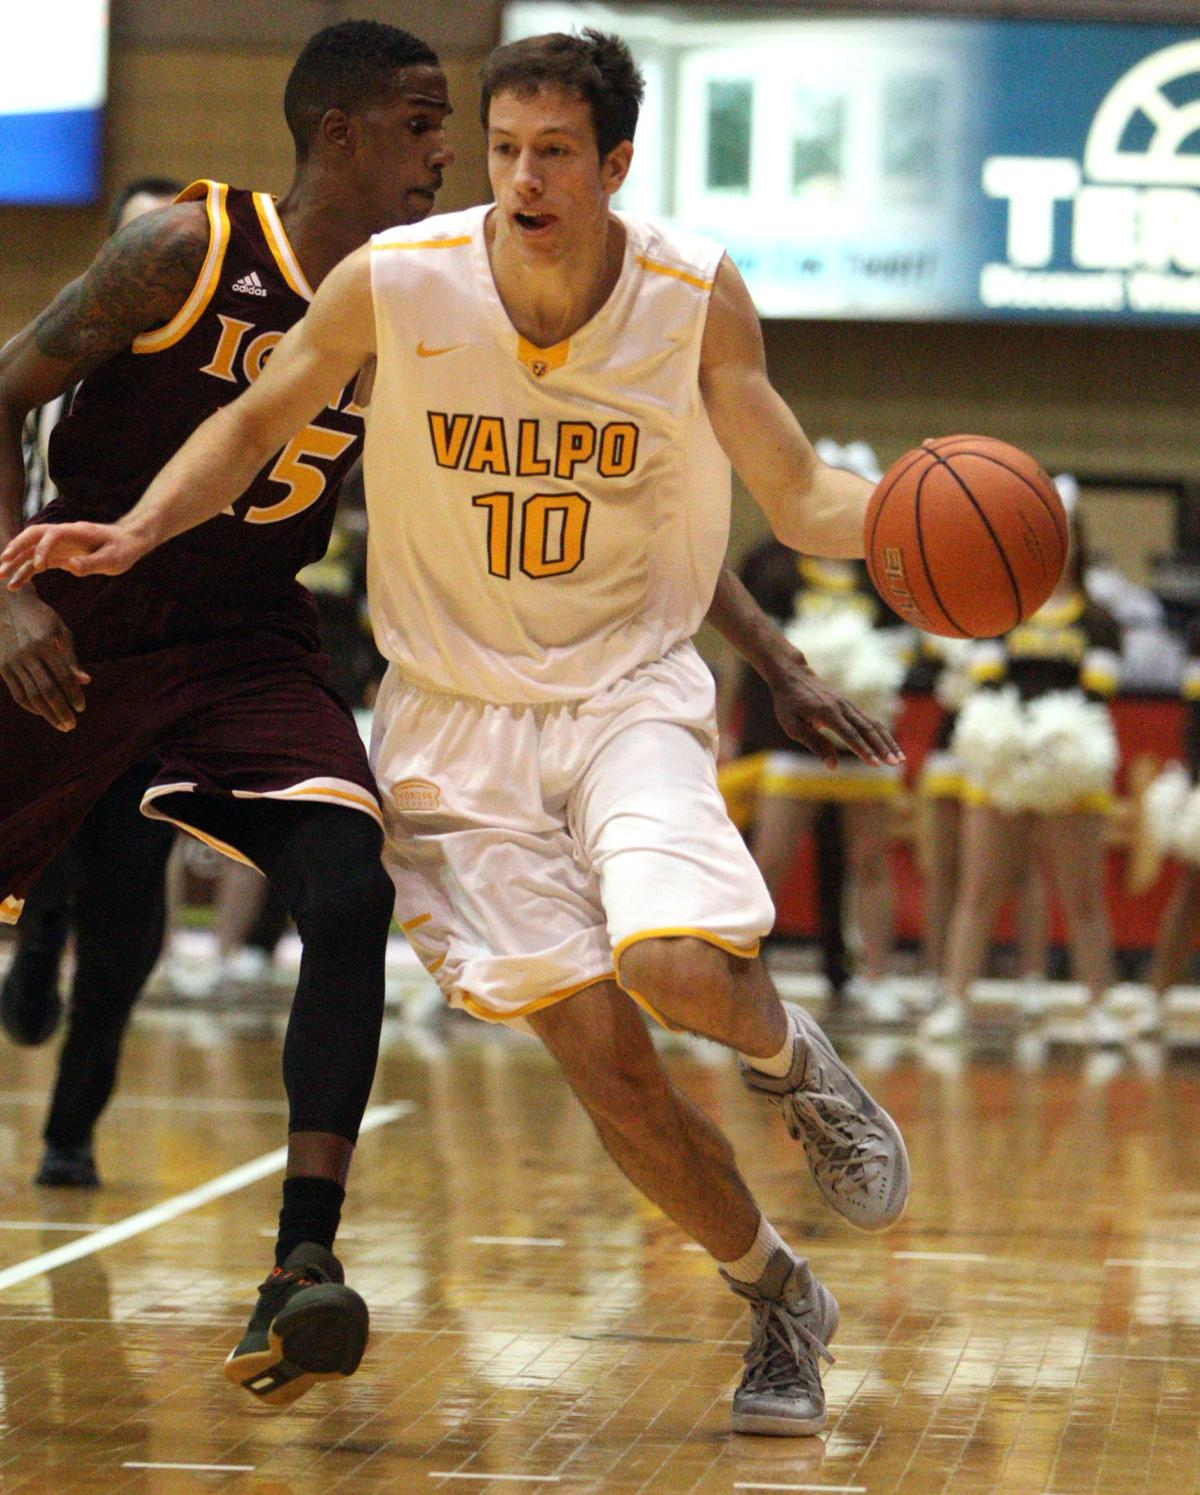 Valparaiso plays Iona, college basketball